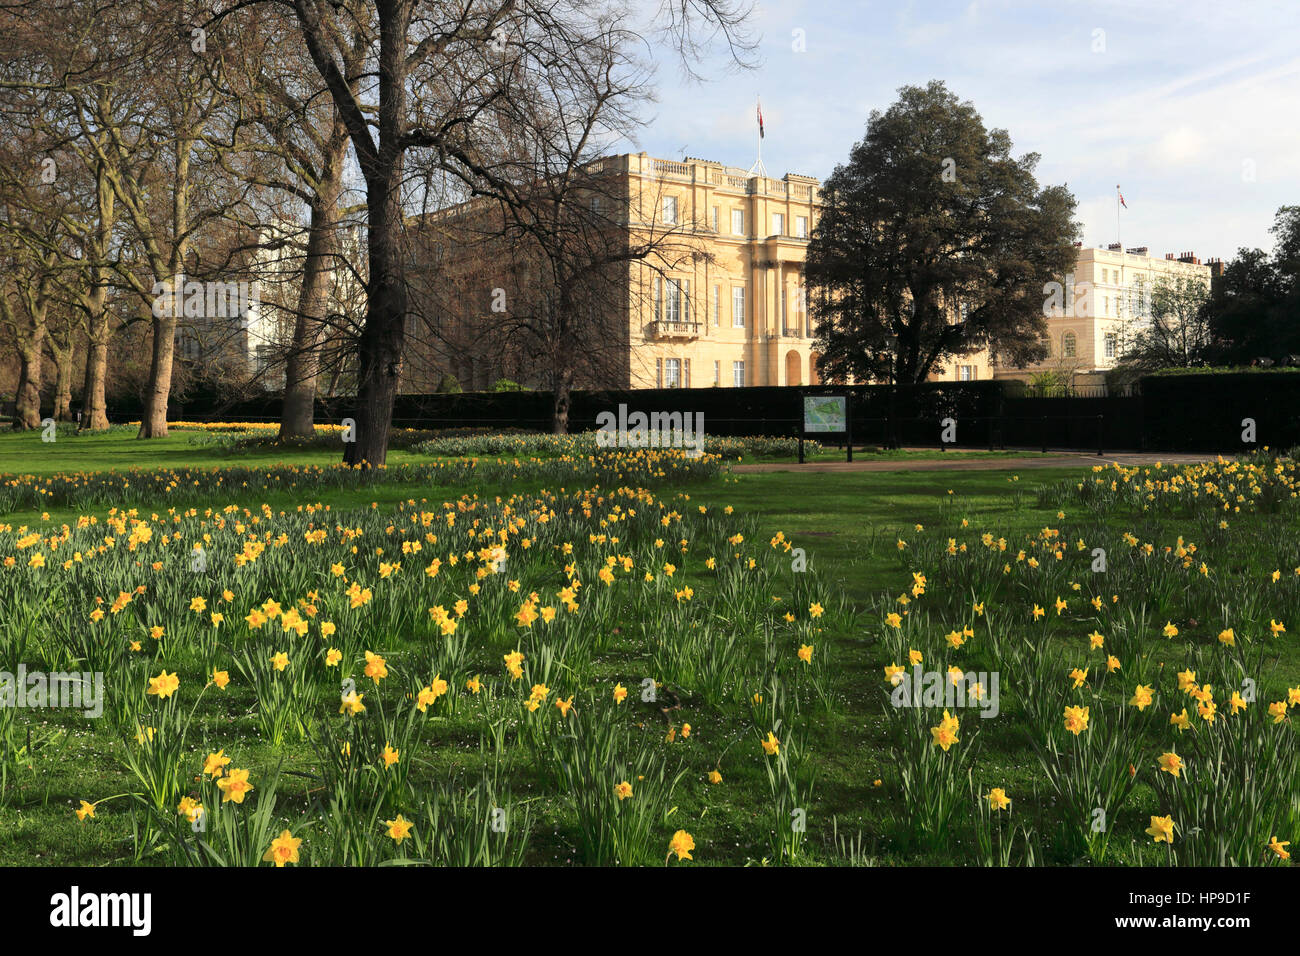 Spring Daffodils, frontage of Lancaster House, Pall Mall, St James, London, England, UK - Stock Image